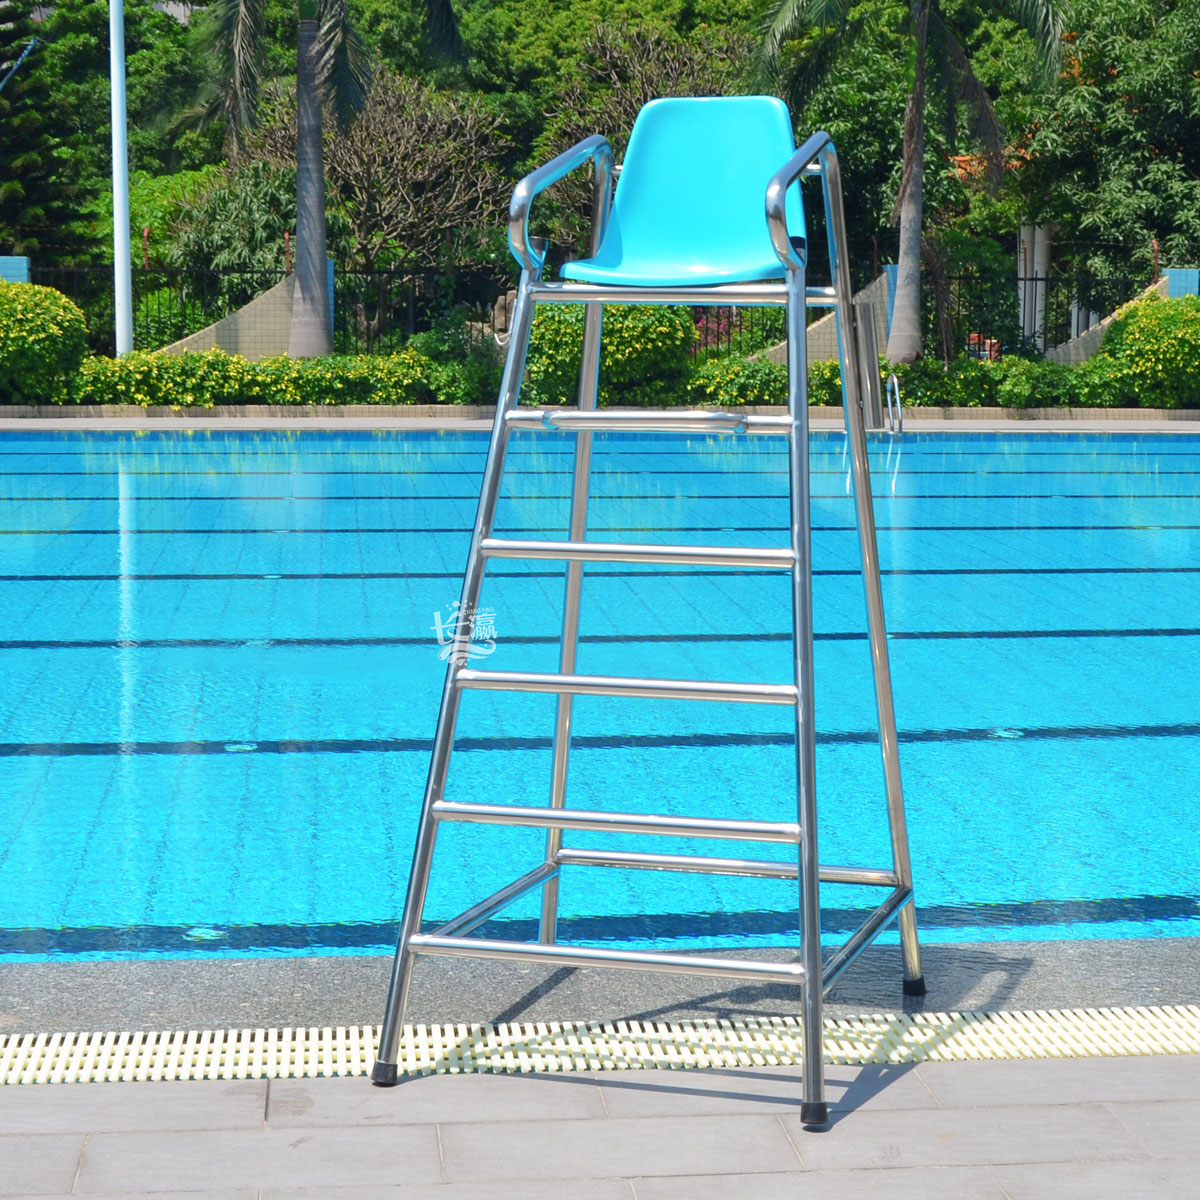 Lifesaving chair umpire chair chairs overlooking quality 304 stainless steel pool watching lookout lifeguard chair chair